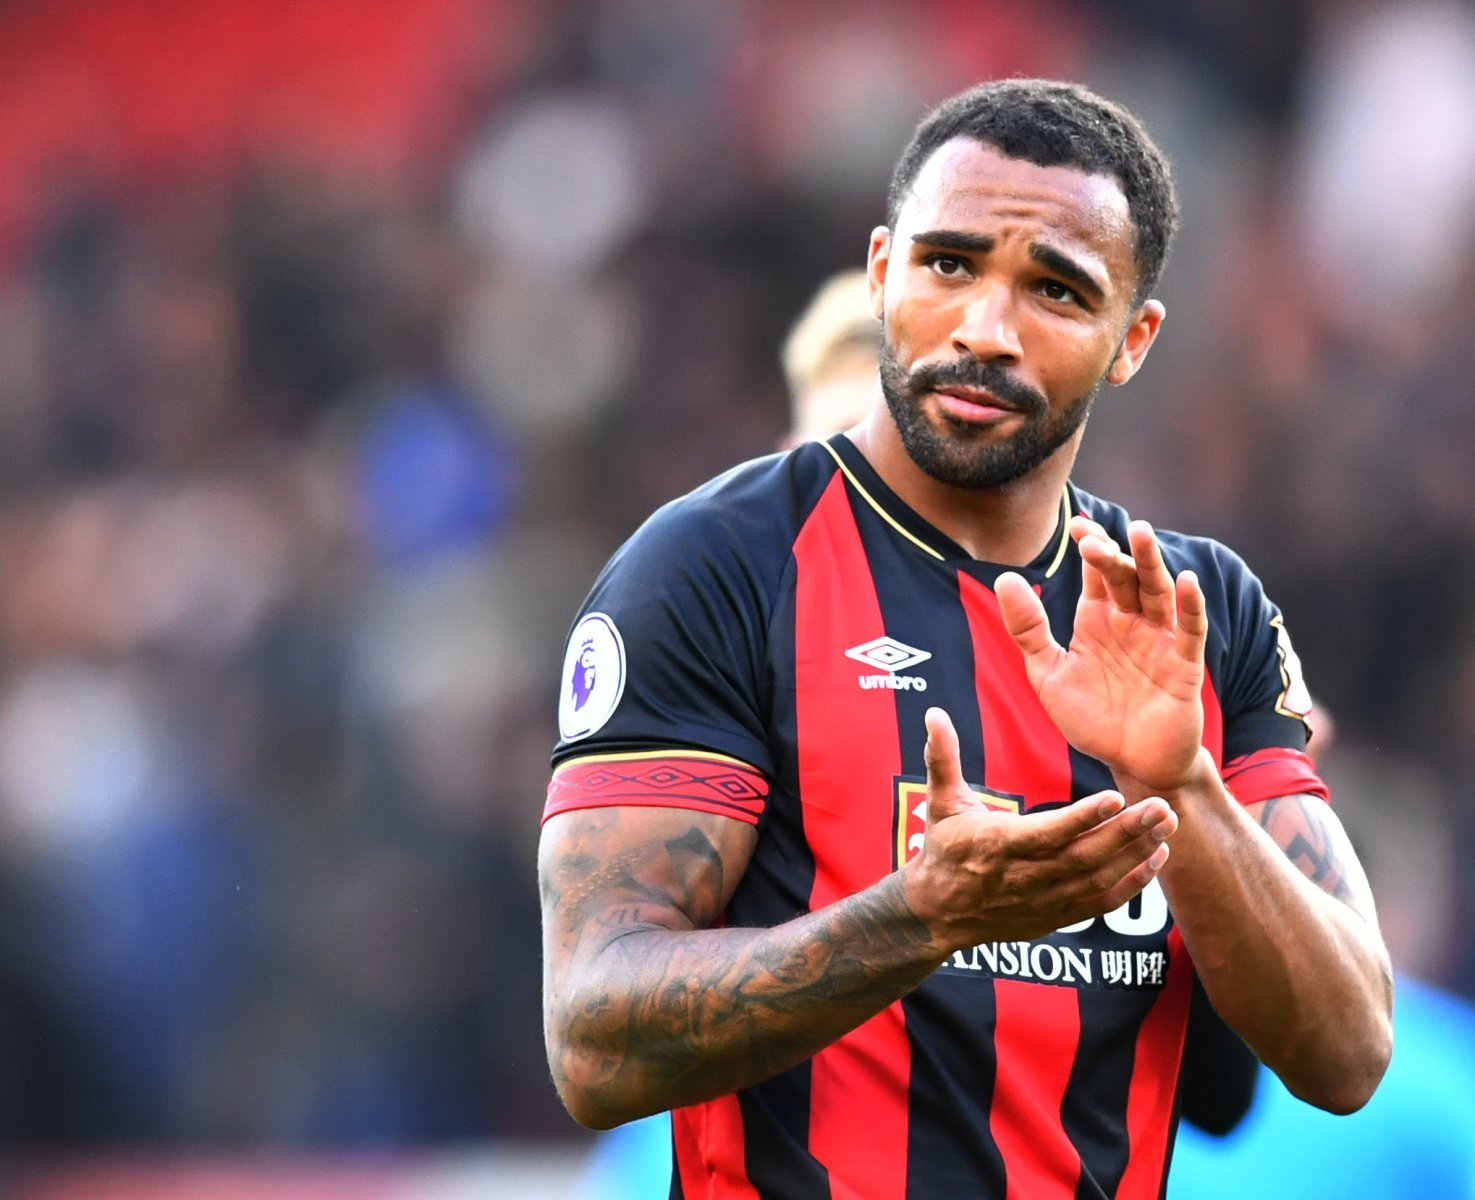 Callum Wilson would give Tottenham an almighty upgrade on awful Fernando Llorente